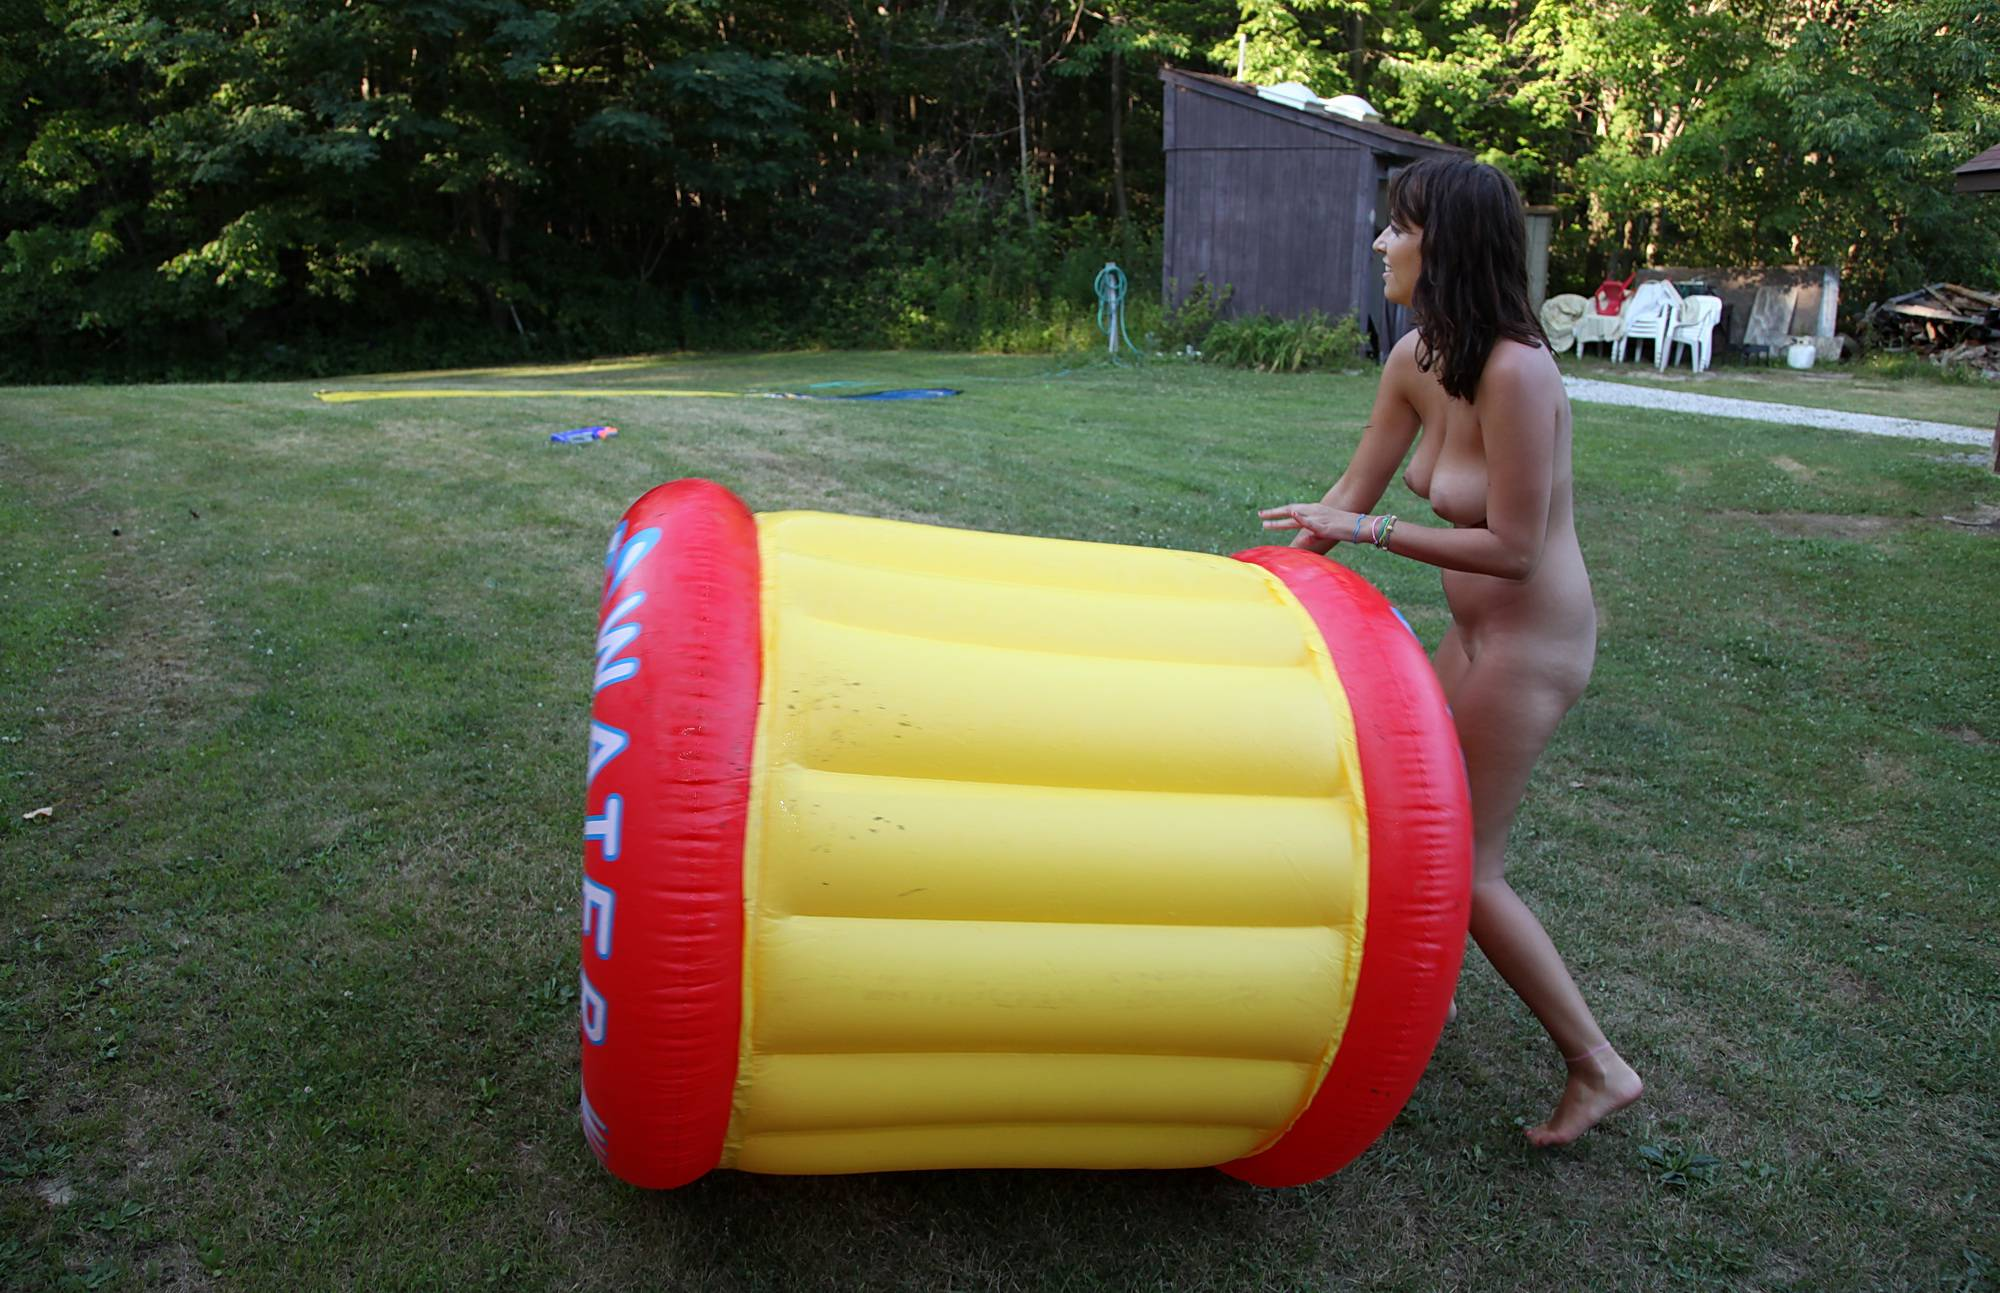 Nudist Photos Water Wheel Grass Roll - 1